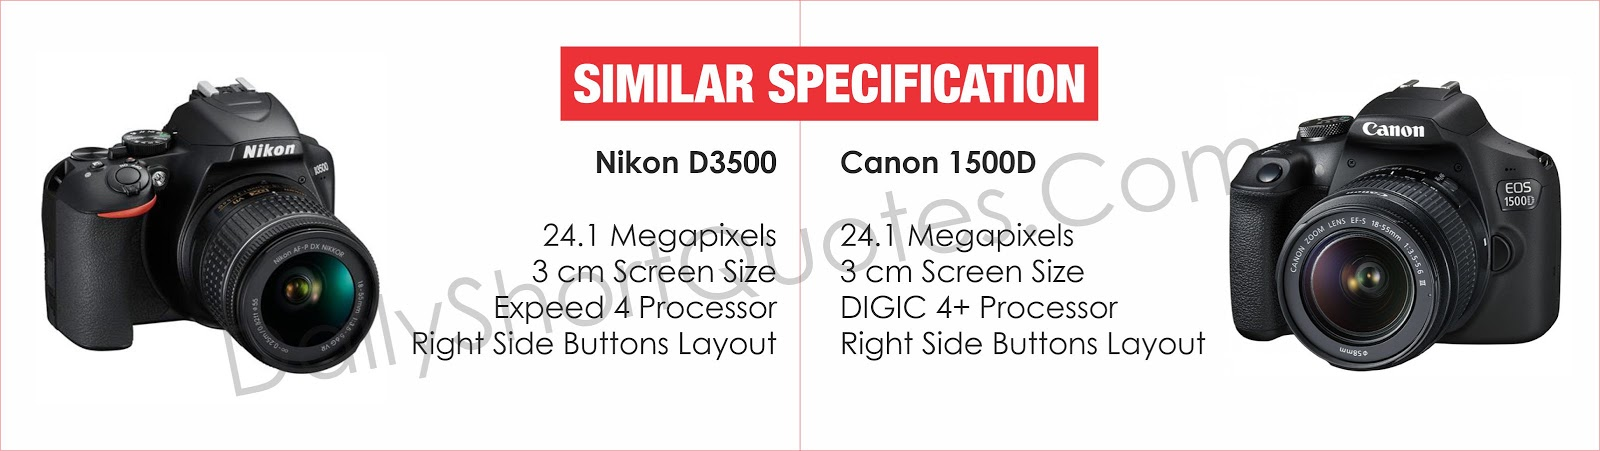 Nikon D3500 and Canon 1500D Similar Features Specifications